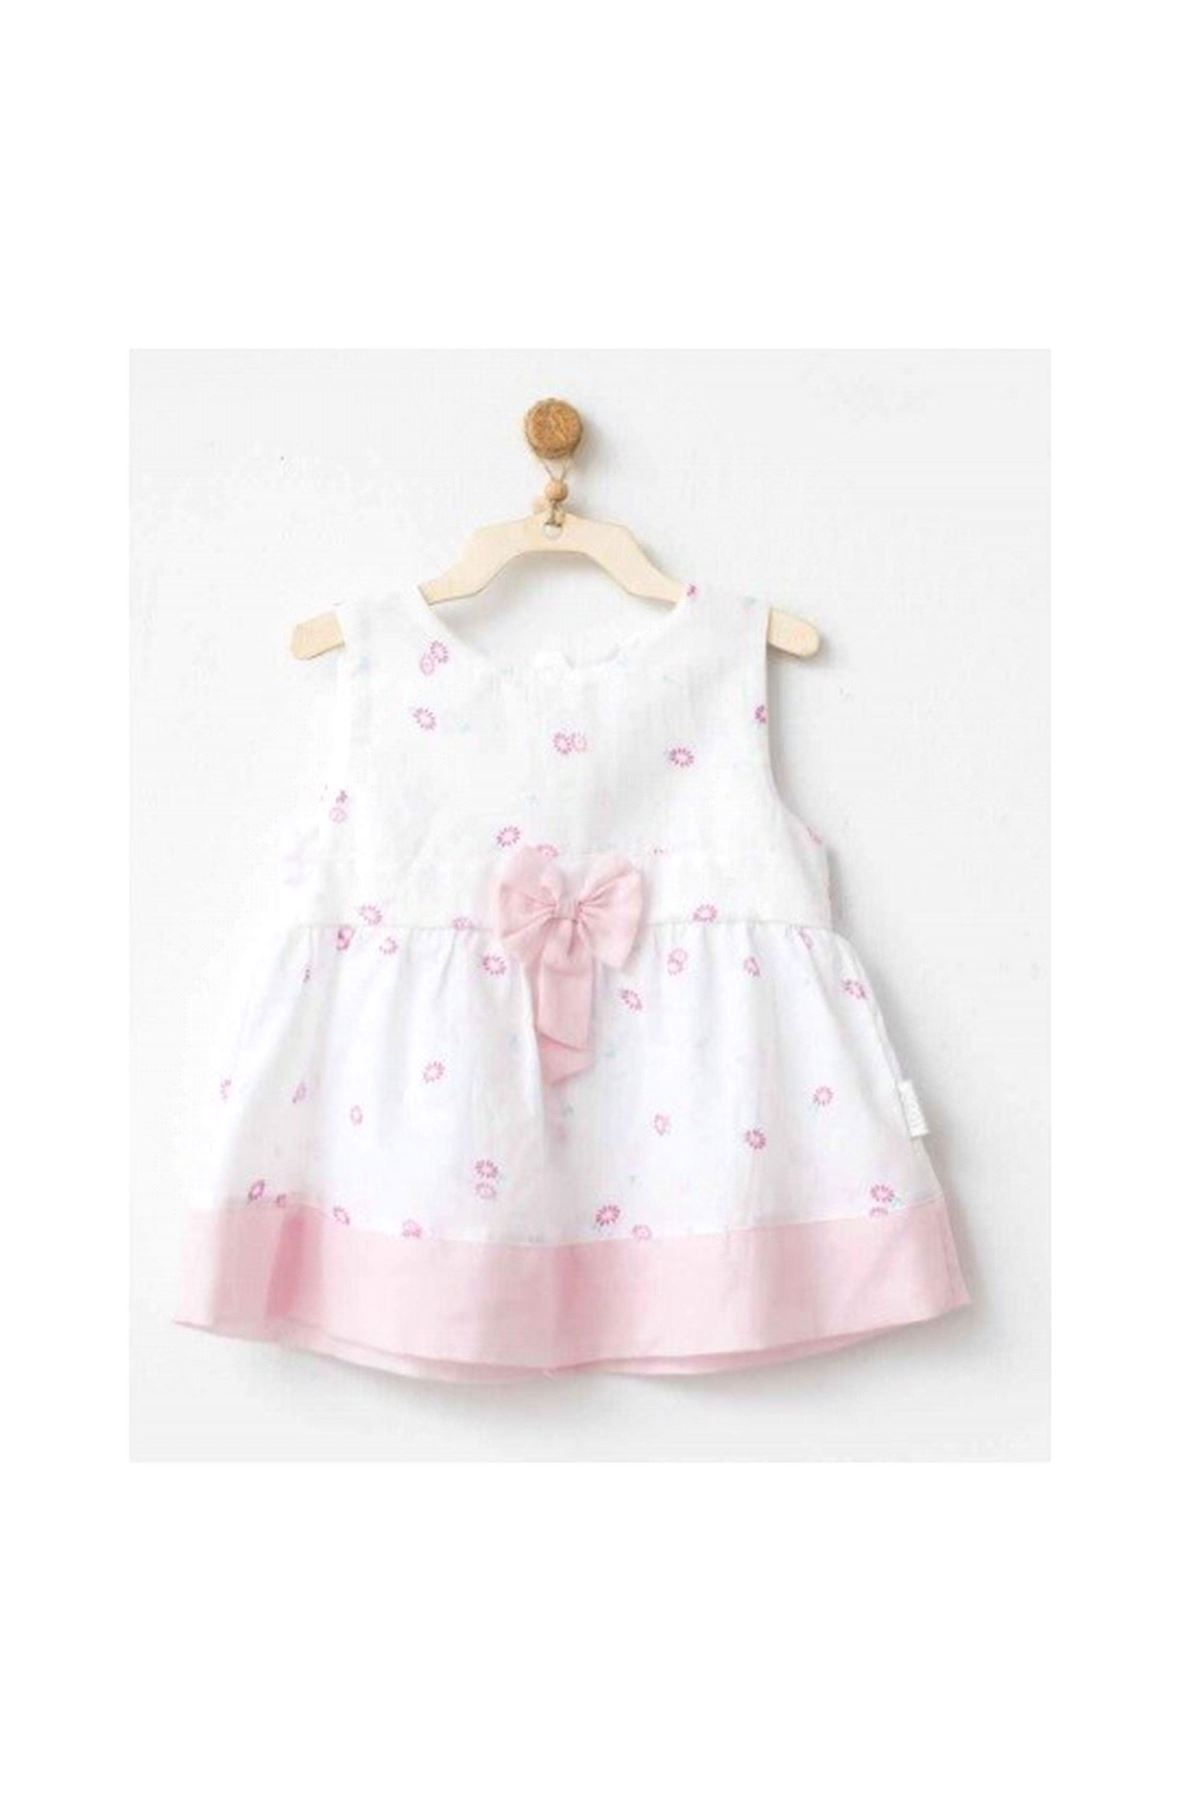 Andywawa AC20543 My Little Bunny Dream Elbise White